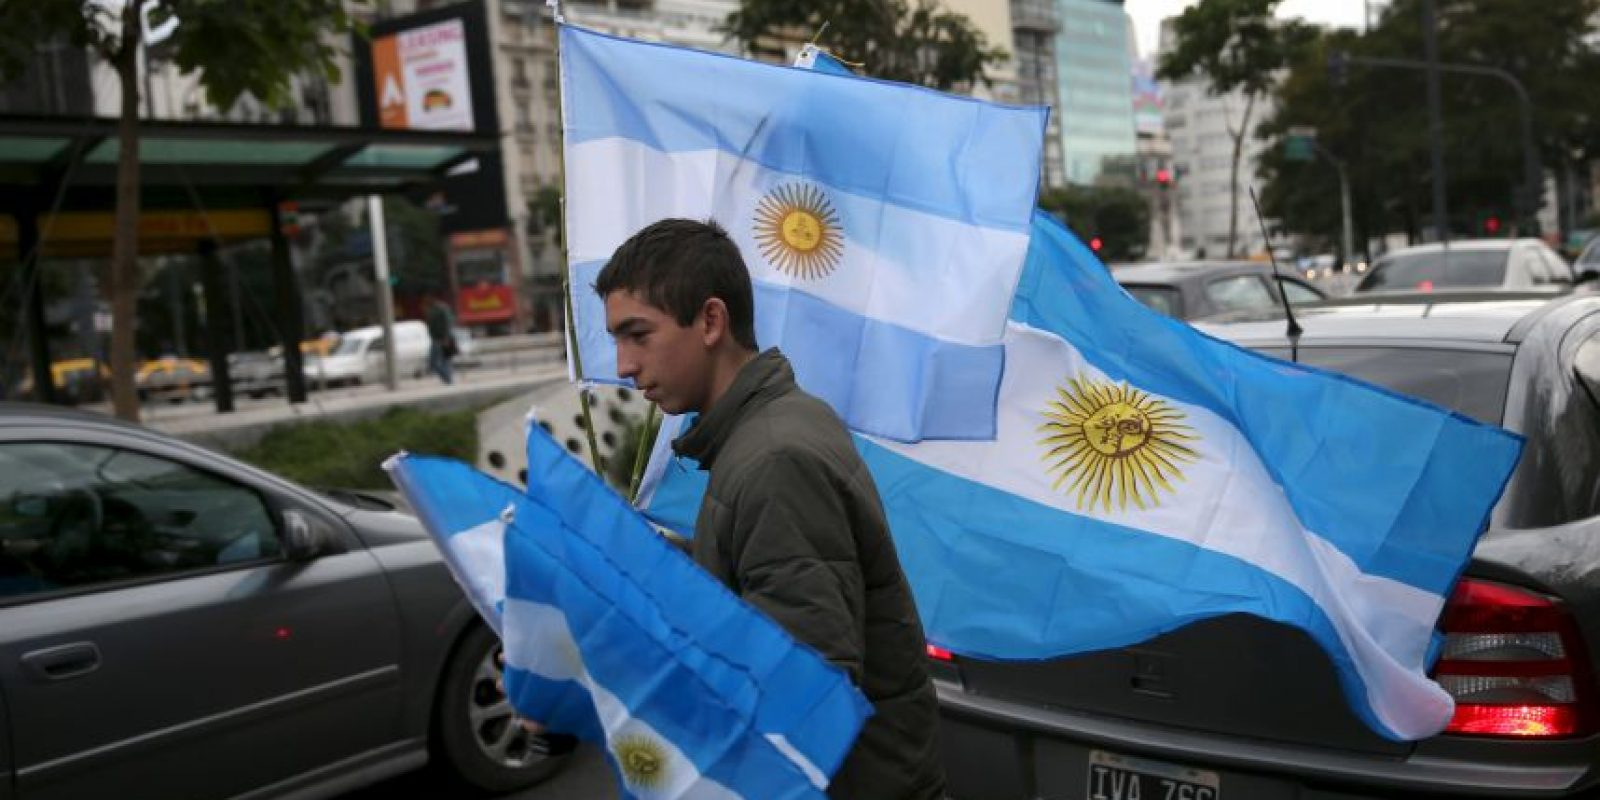 1. Argentinos Foto: Getty Images